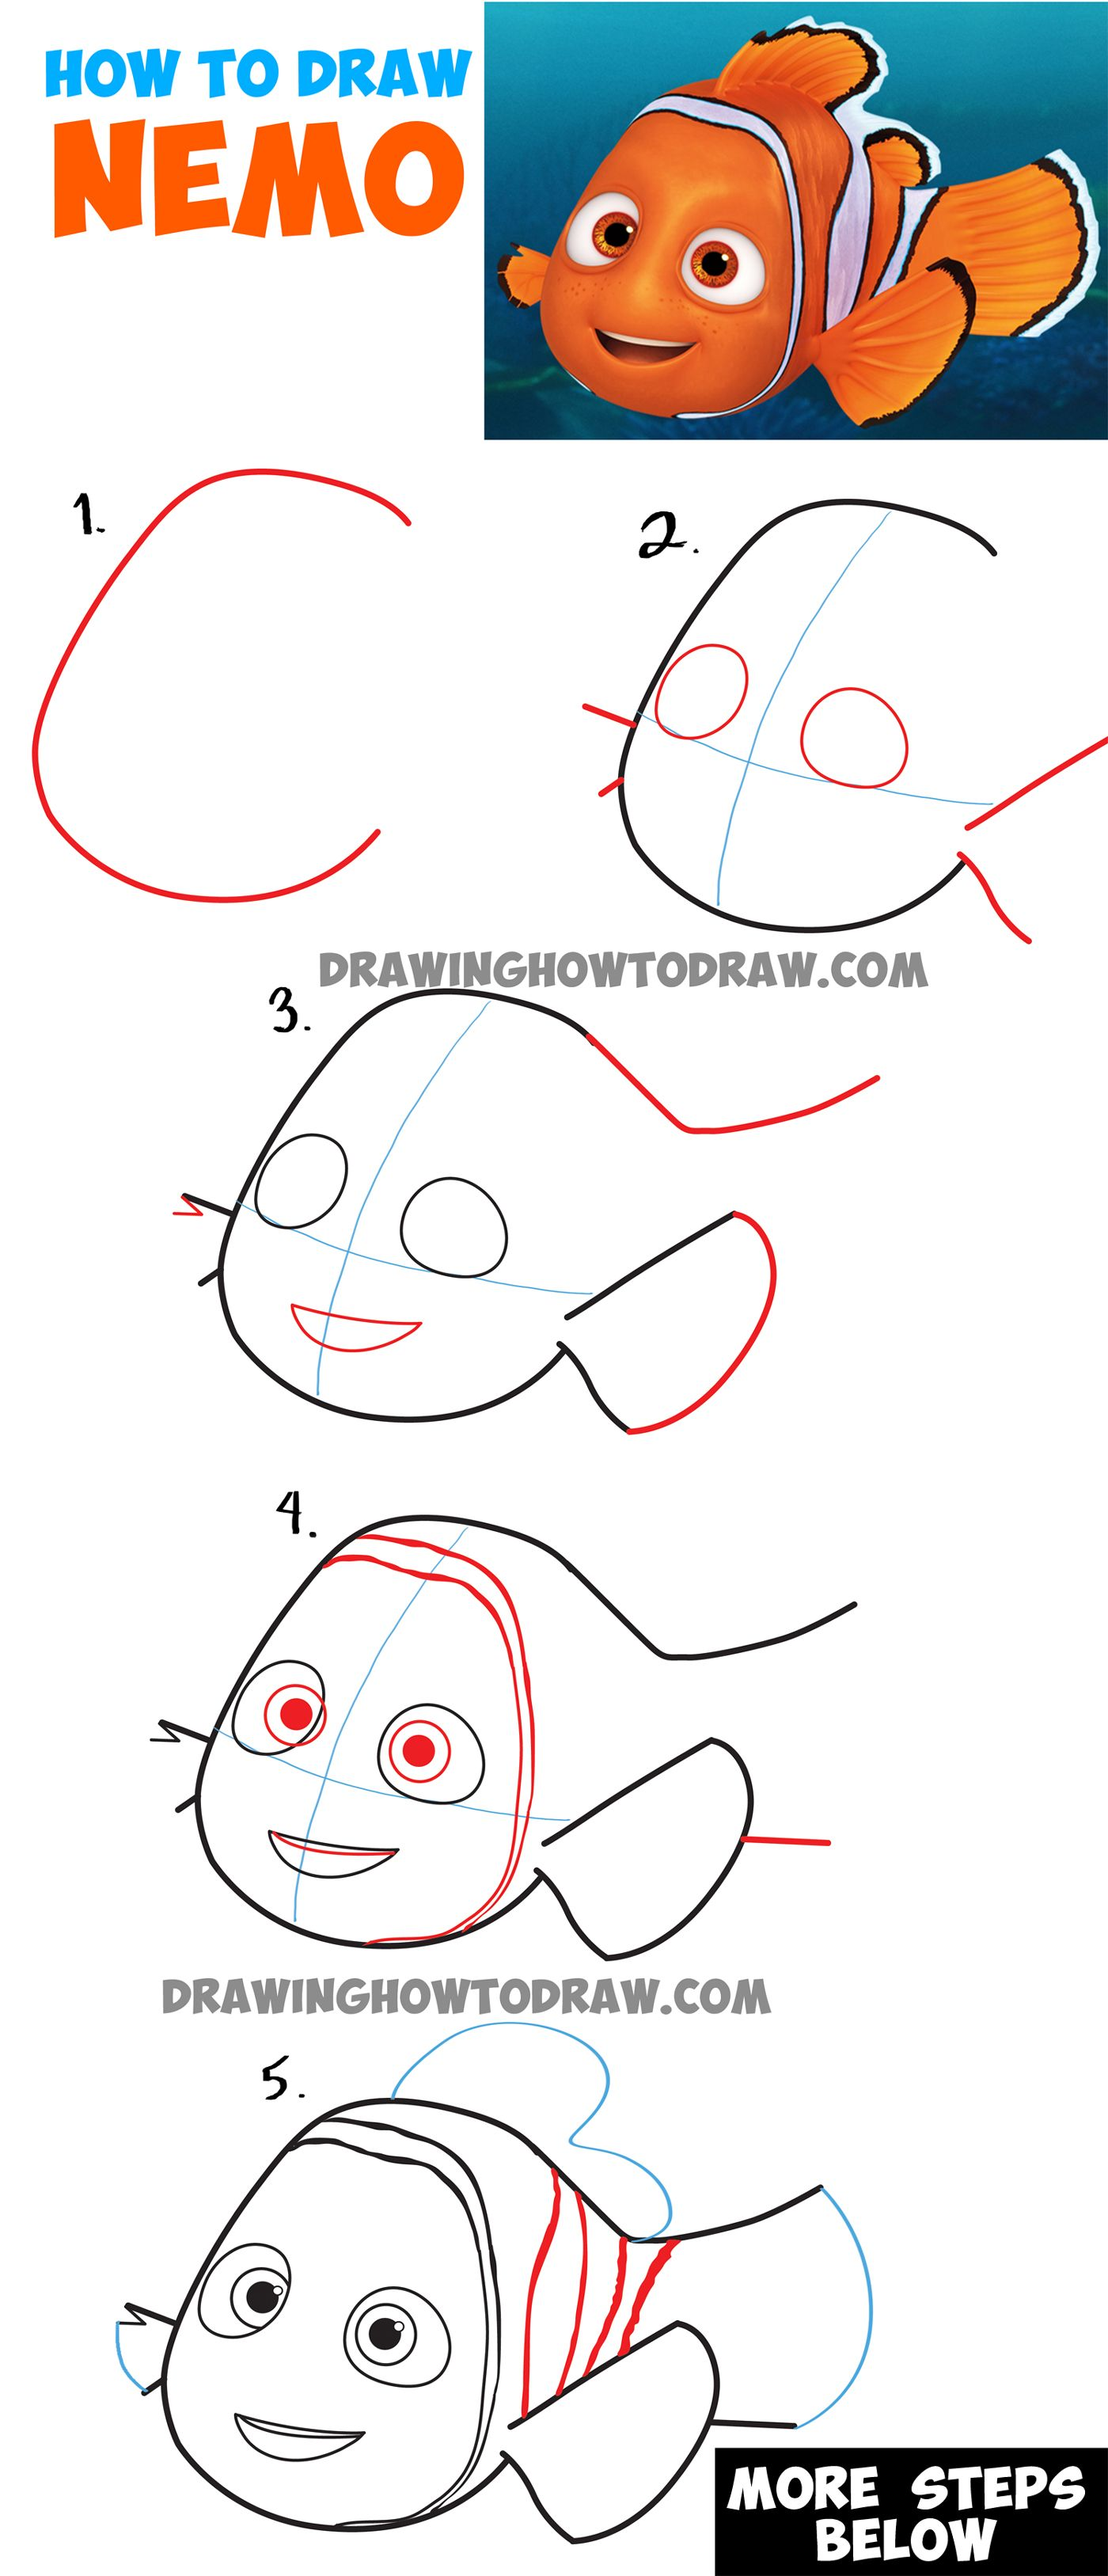 Uncategorized Disney Drawings Step By Step learn how to draw nemo from disneys finding dory easy steps drawing lesson